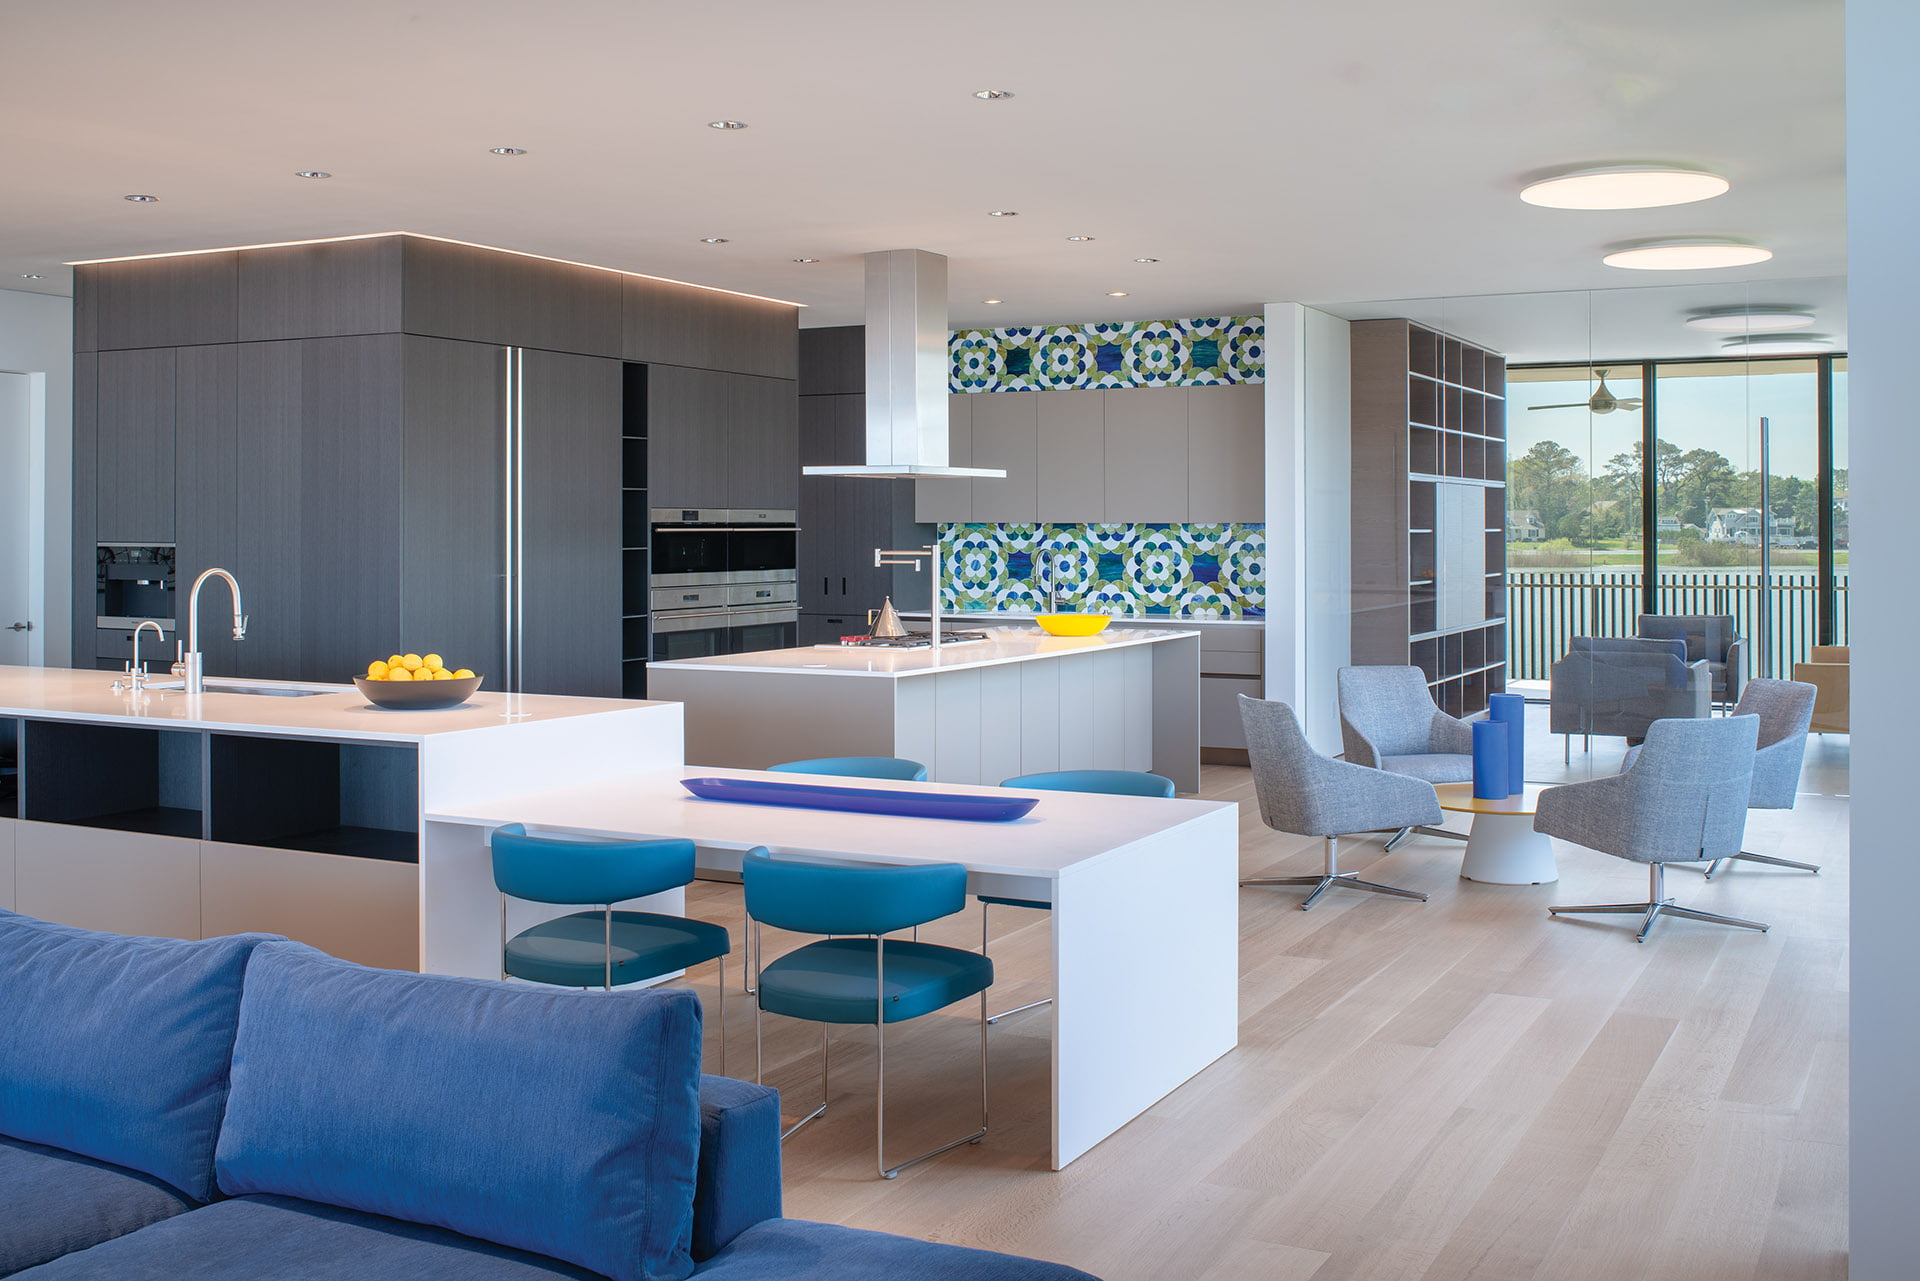 Dual-height island separates the living area and kitchen featuring Boffi cabinetry and a Zephyr hood